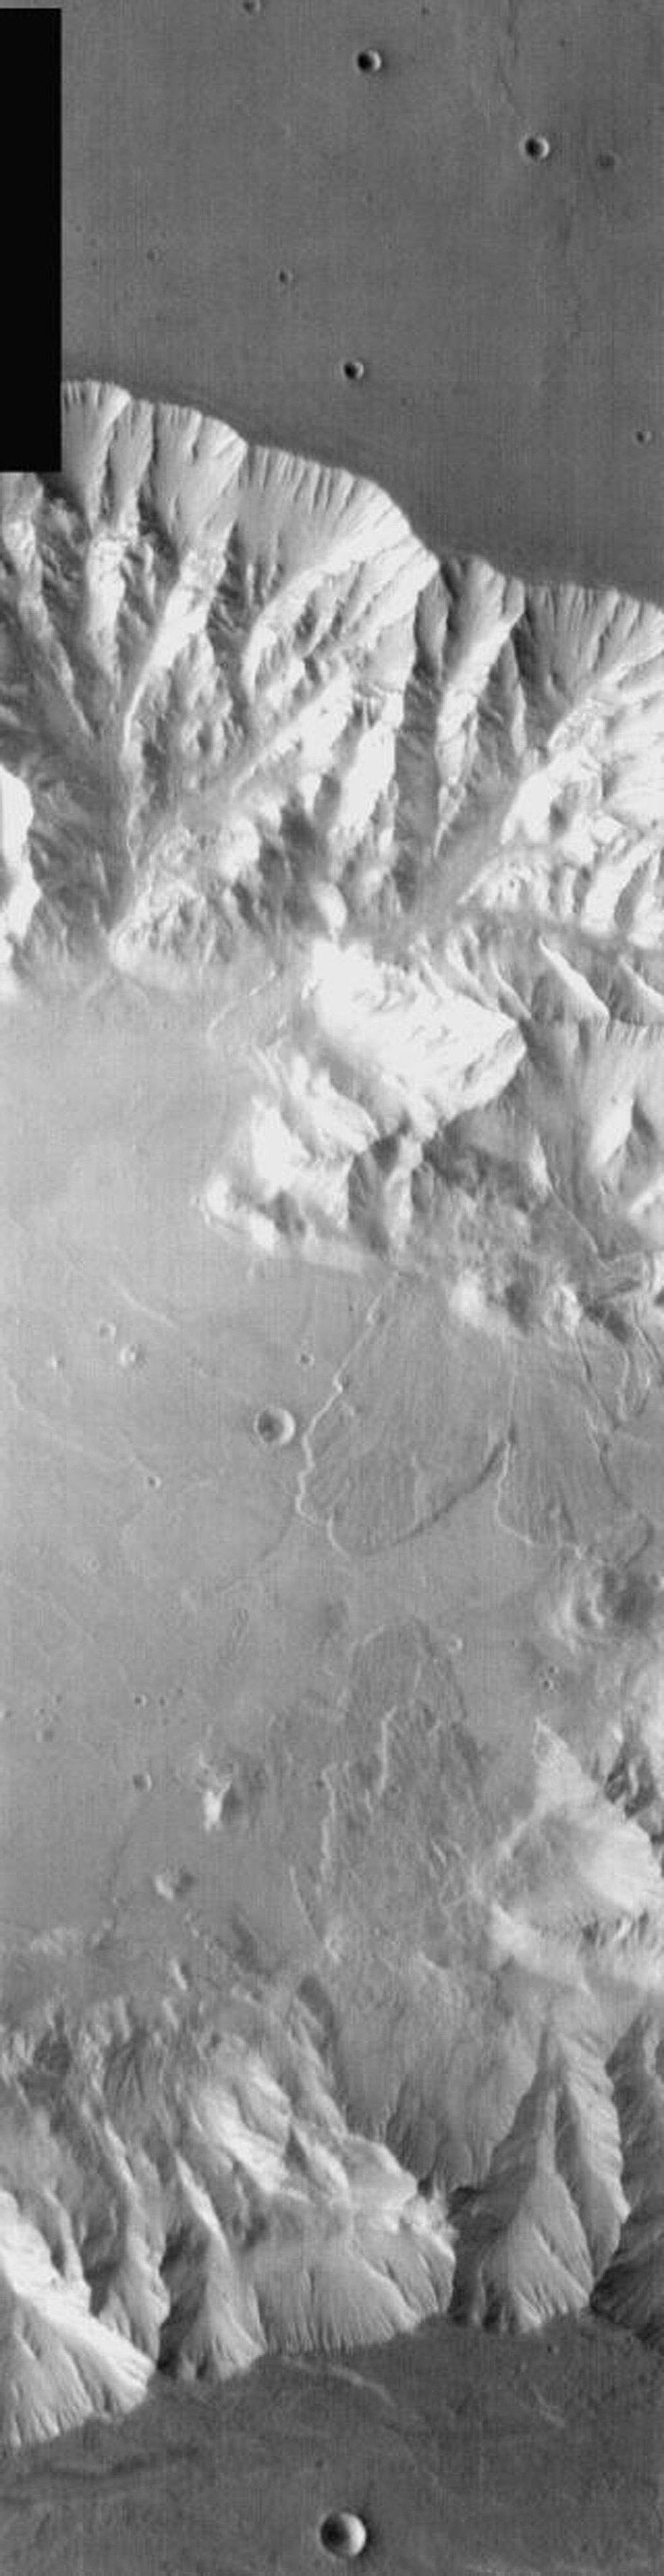 This image from NASA's Mars Odyssey shows a portion of Coprates Chasma on Mars, part of Valles Marineris with multiple large landslides.